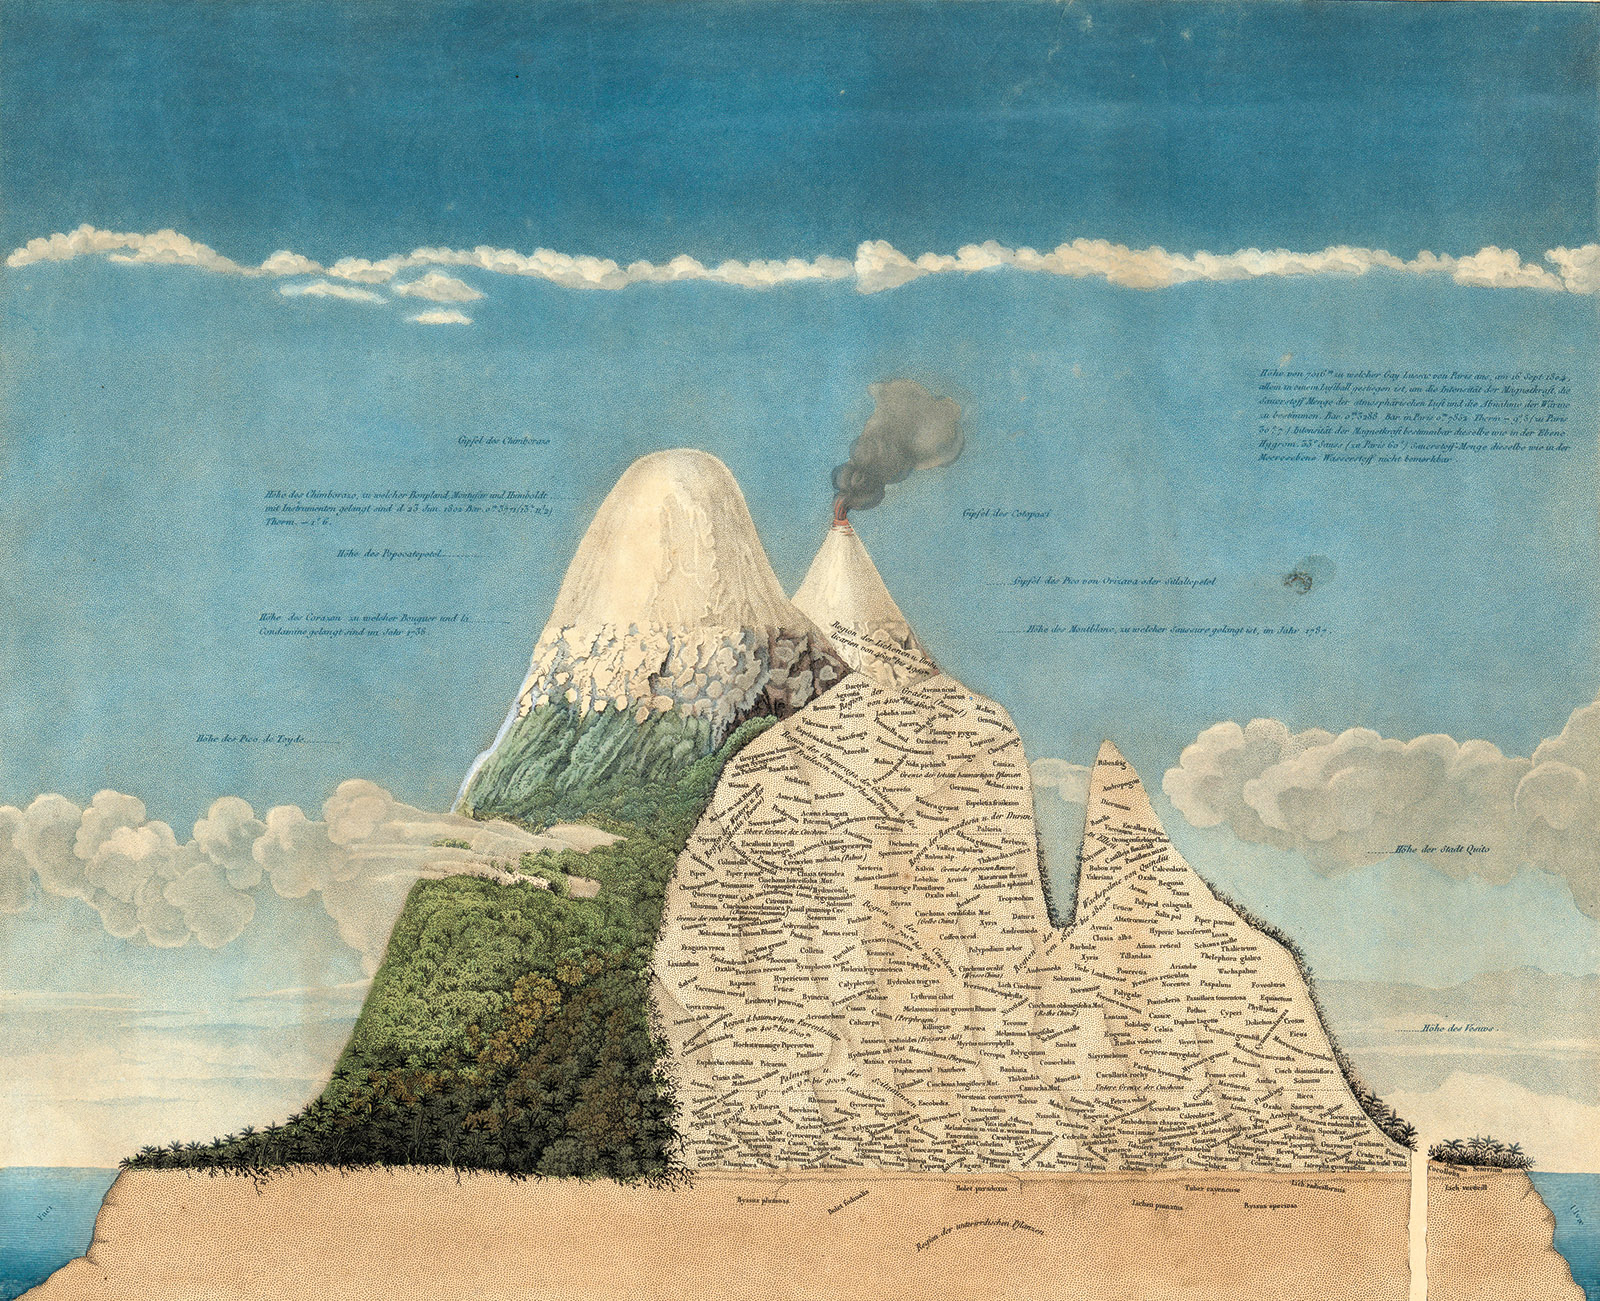 Chimborazo and Cotopaxi volcanoes in the Andes; from Humboldt's Geography of Plants in Tropical Countries, 1807. The text on the volcanoes shows the distribution of plant species by altitude.